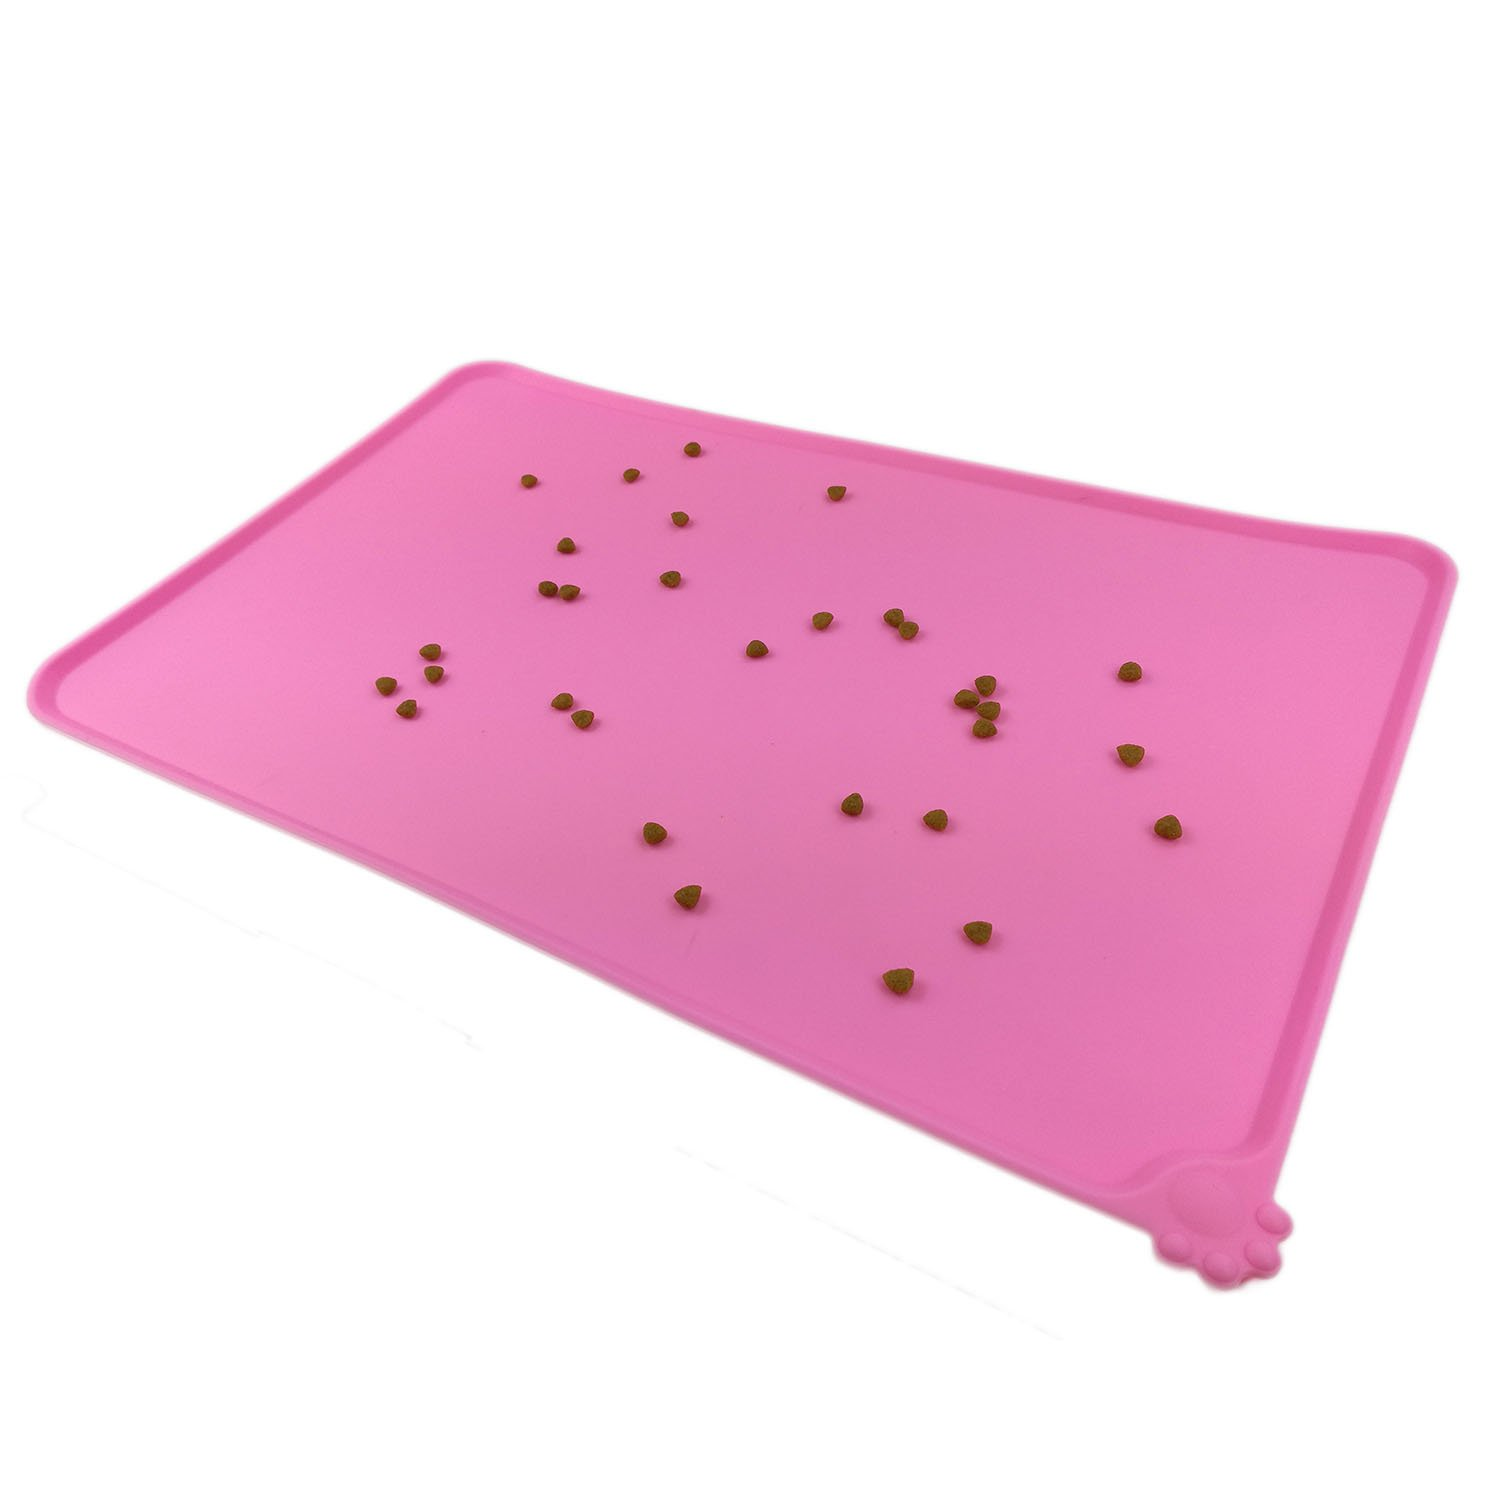 Reopet Large Silicone Dog Cat Bowl Mat Non-stick Food Pad Water Cushion FDA Approved Waterproof